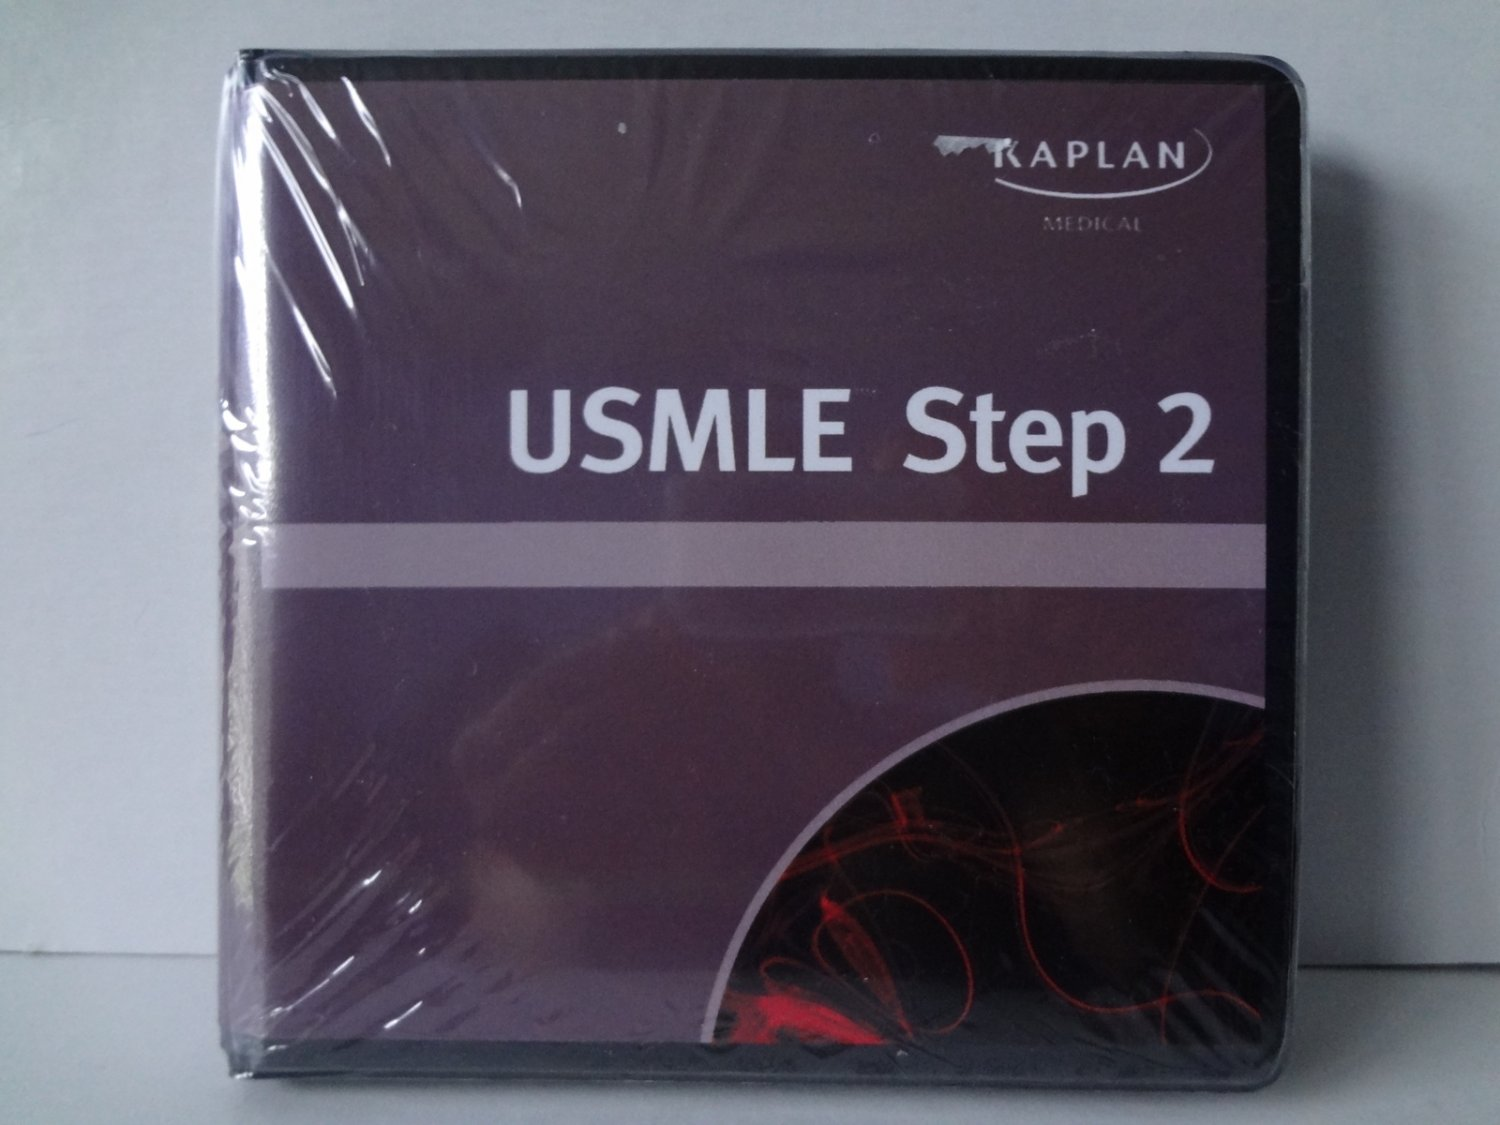 Kaplan High Yield Lectures for USMLE Step 2 CK (MTB2CK) [DVD-ROM]